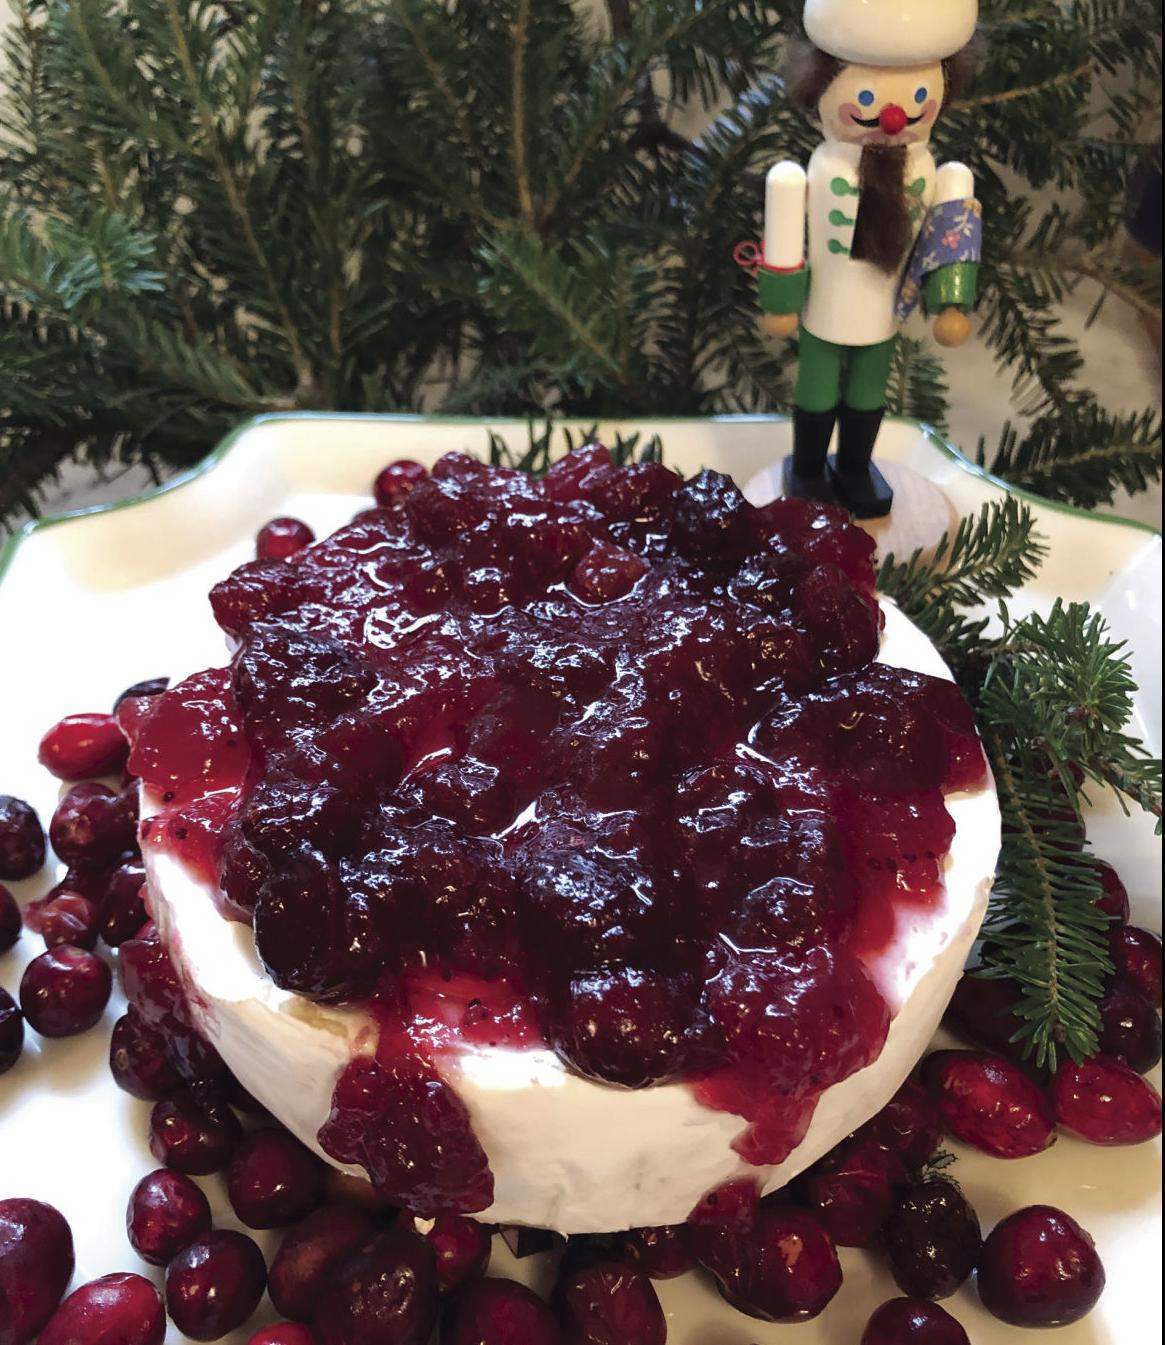 Bake Brie with Cranberry Sauce